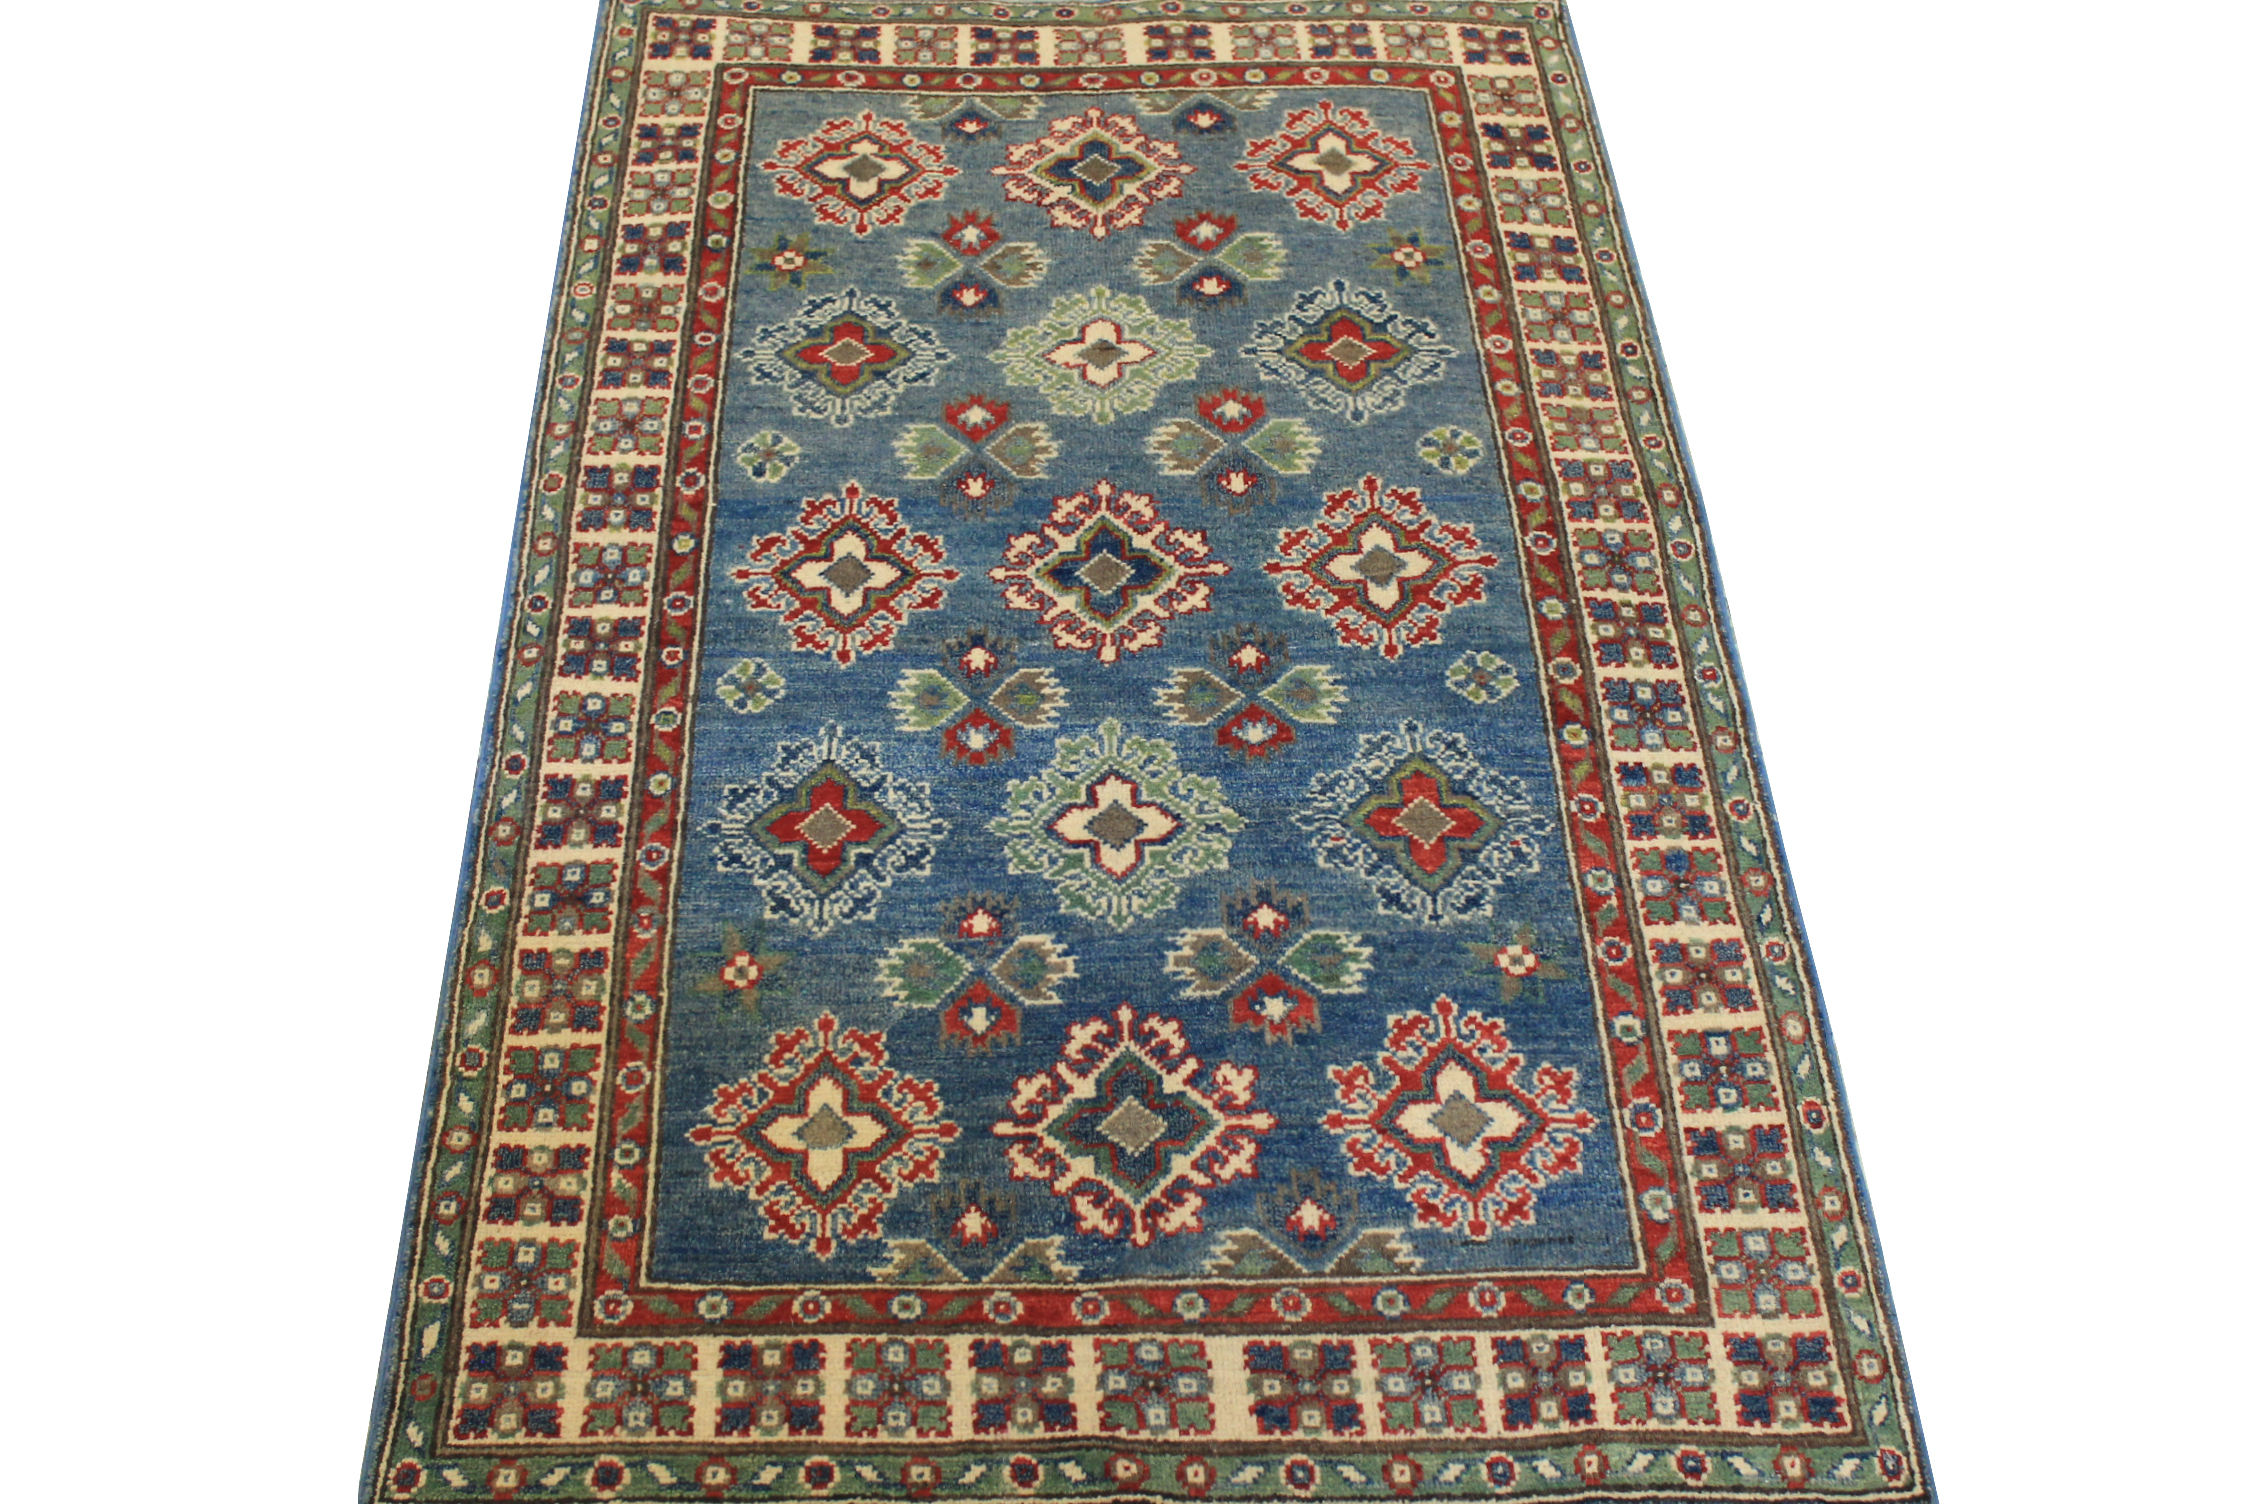 3x5 Kazak Hand Knotted Wool Area Rug - MR024539